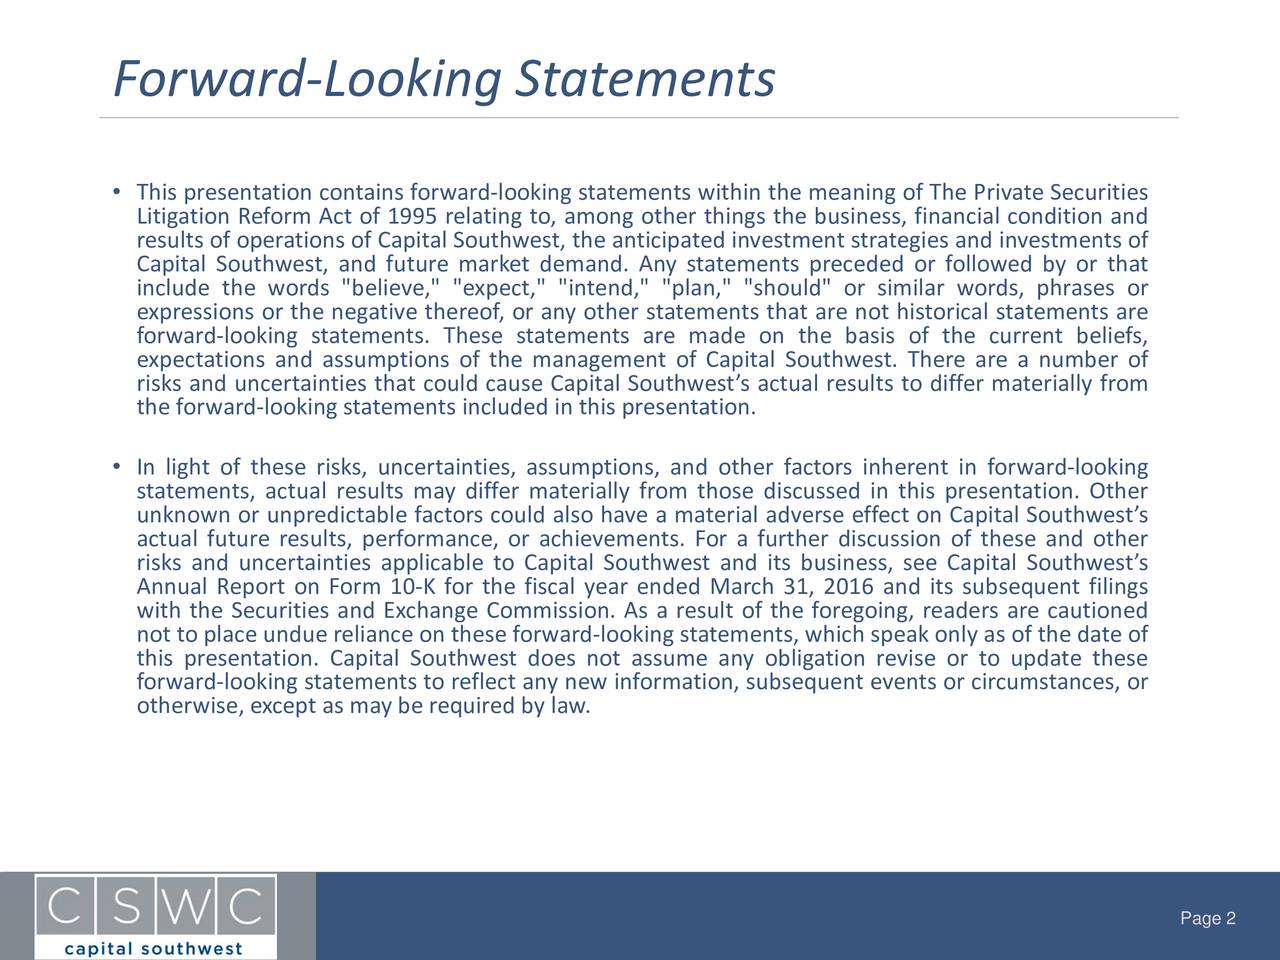 "This presentation containsforward-looking statements within the meaning of The PrivateSecurities Litigation ReformAct of 1995 relating to, among other things the business, financial condition and Capital Southwest, and future market demand. Any statements preceded or followed by or thatments of include the words ""believe,"" ""expect,"" ""intend,"" ""plan,"" ""should"" or similar words, phrases or expressions or the negative thereof, or any other statements that are not historical statements are forward-looking statements. These statements are made on the basis of the current beliefs, expectations and assumptions of the management of Capital Southwest. There are a number of risks and uncertainties that could cause Capital Southwests actual results to differmaterially from the forward-looking statements included in this presentation. In light of these risks, uncertainties, assumptions, and other factors inherent in forward-looking statements, actual results may differ materially from those discussed in this presentation. Other unknown or unpredictable factorscould also have a material adverse effecton Capital Southwests actual future results, performance, or achievements. For a further discussion of these and other risks and uncertainties applicable to Capital Southwest and its business, see Capital Southwests Annual Report on Form 10-K for the fiscal year ended March 31, 2016 and its subsequent filings with the Securities and Exchange Commission. As a result of the foregoing,readers are cautioned not to place undue relianceon these forward-looking statements,which speak only as of the dateof this presentation. Capital Southwest does not assume any obligation revise or to update these otherwise, except as maybe requiredby law.ew information, subsequent eventsor circumstances, or Page 2"